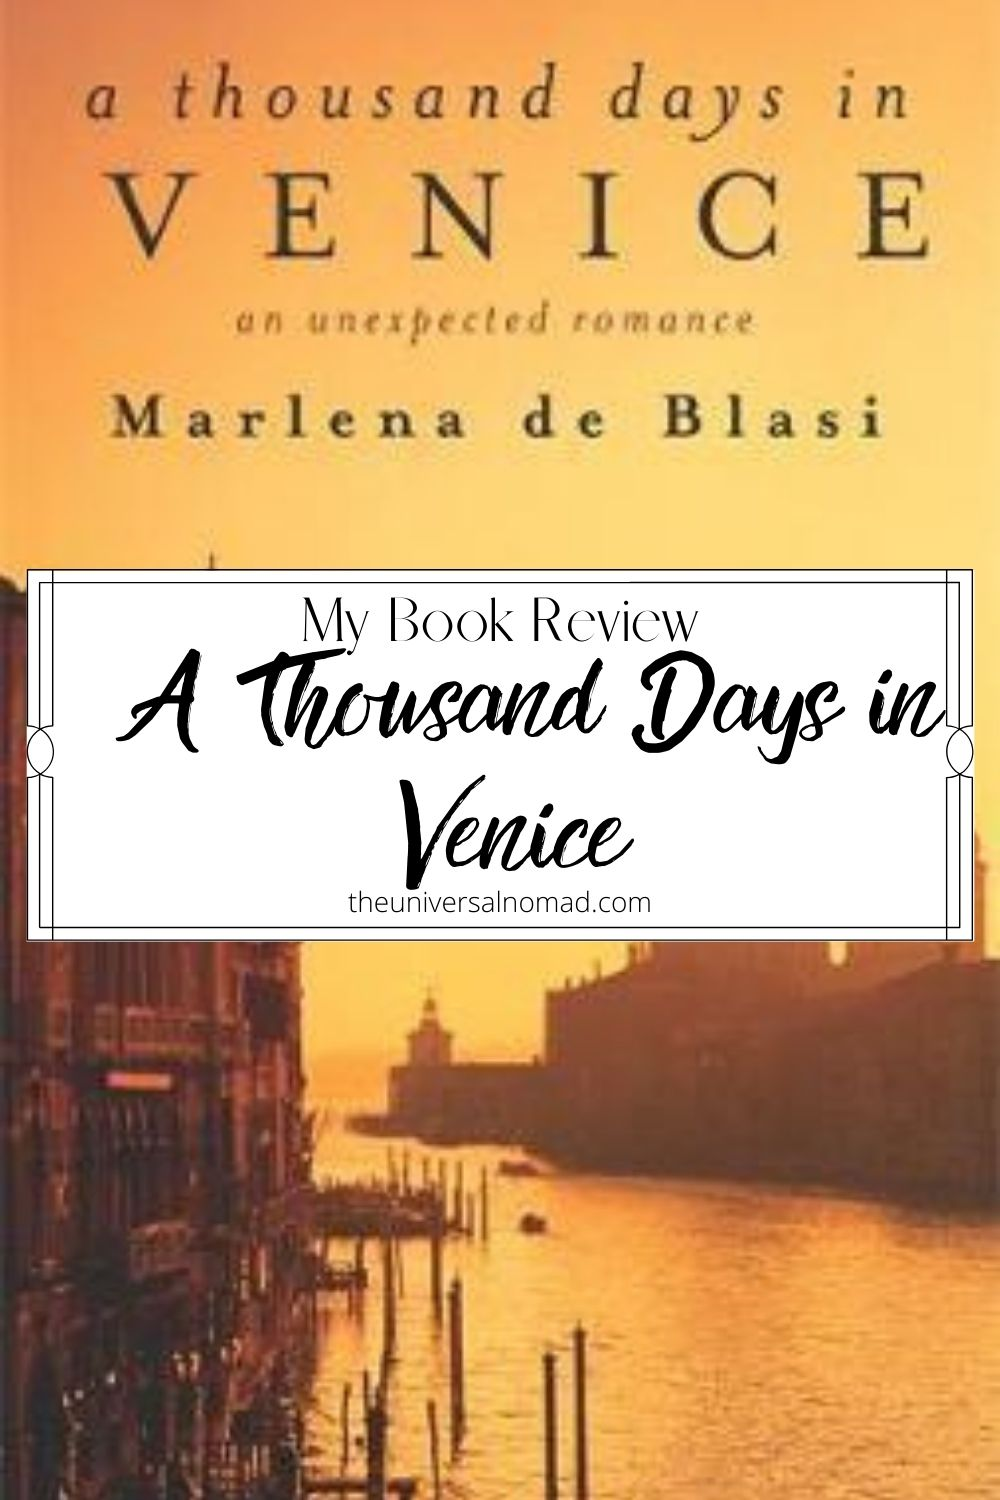 Book review for A Thousand Days in Venice by Marlena di Blasi